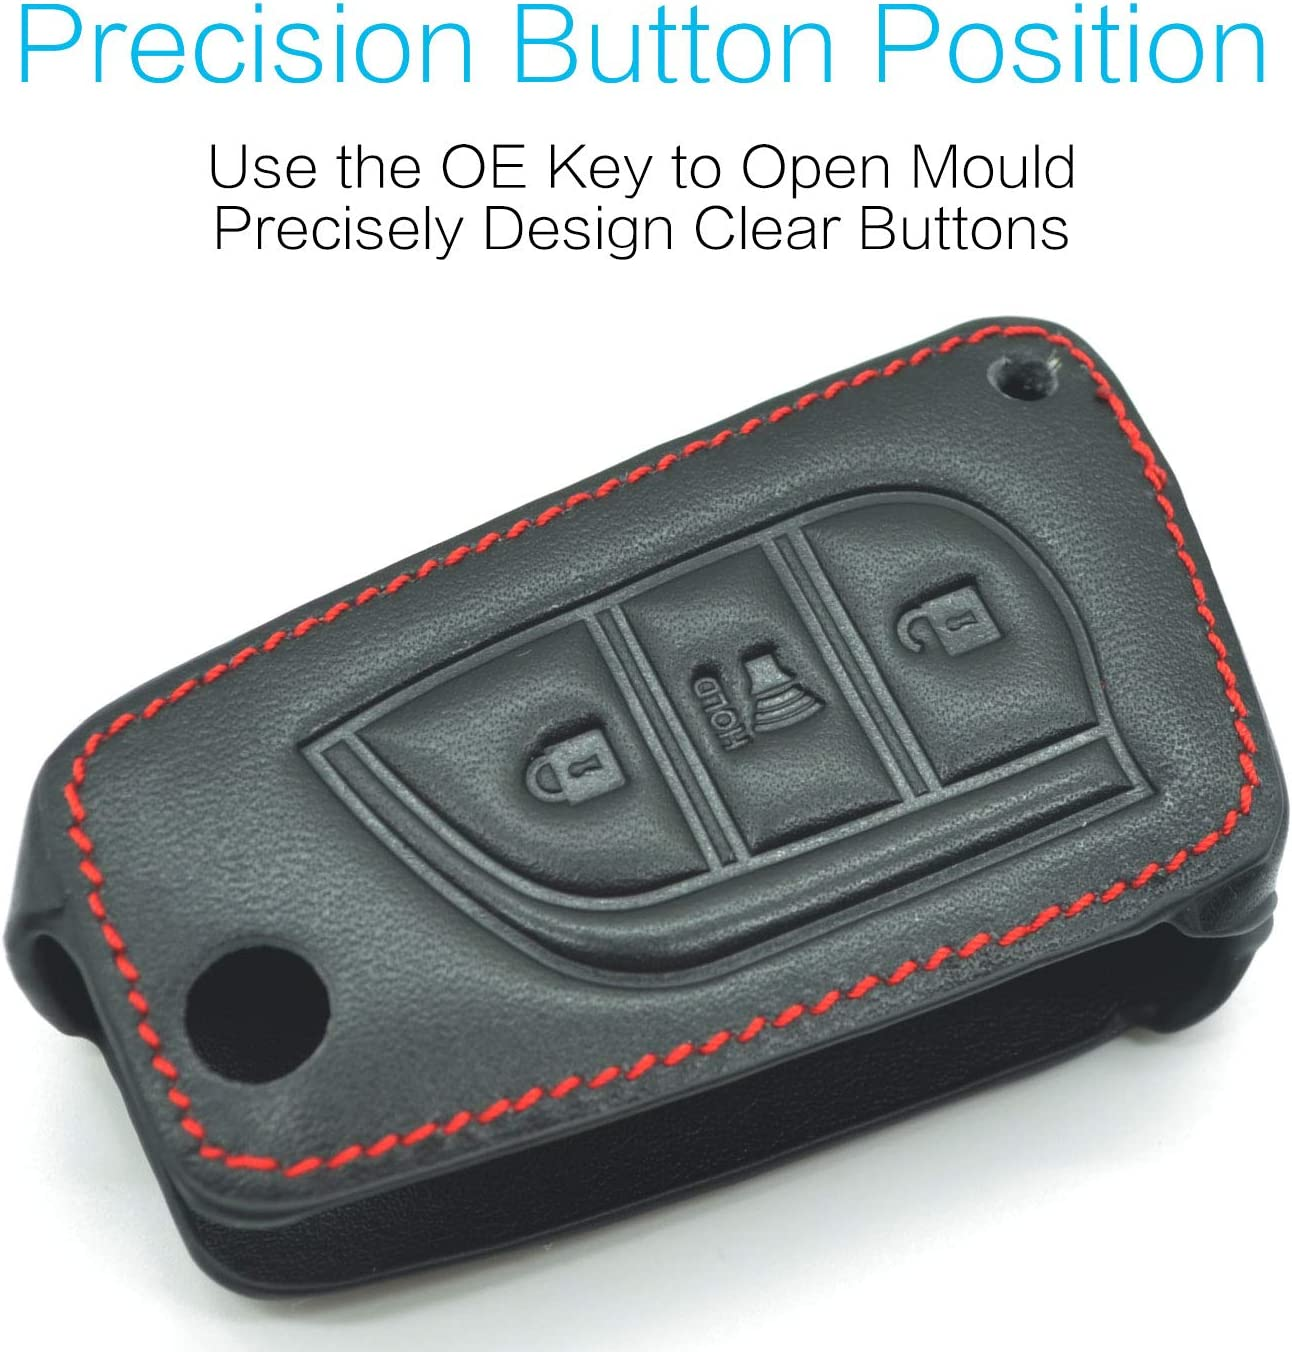 MECHCOS Compatible with fit for 2018 2017 Toyota Corolla iM Flip Fob 3 Buttons Leather Smart Keyless Entry Remote Control Key Fob Cover Pouch Bag Jacket Case Protector Shell